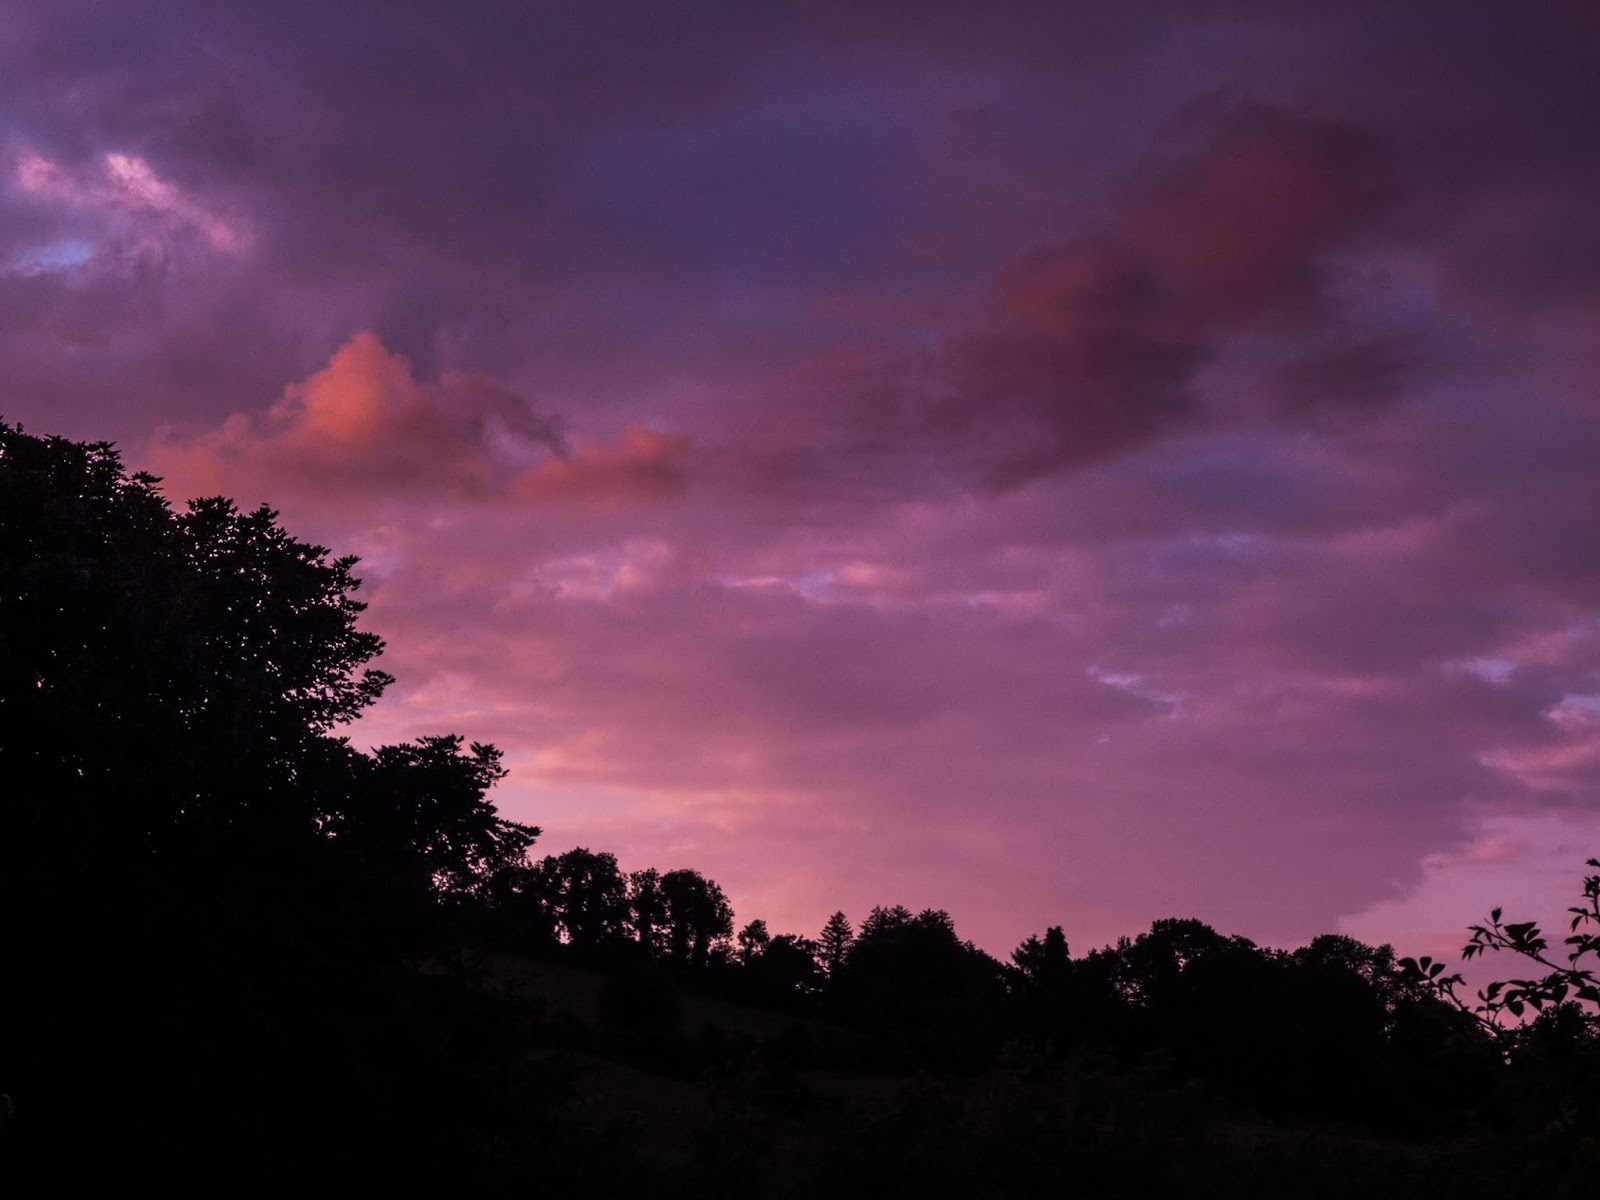 Purple sunset sky and clouds over trees in the Boggeragh Mountains, Co.Cork.